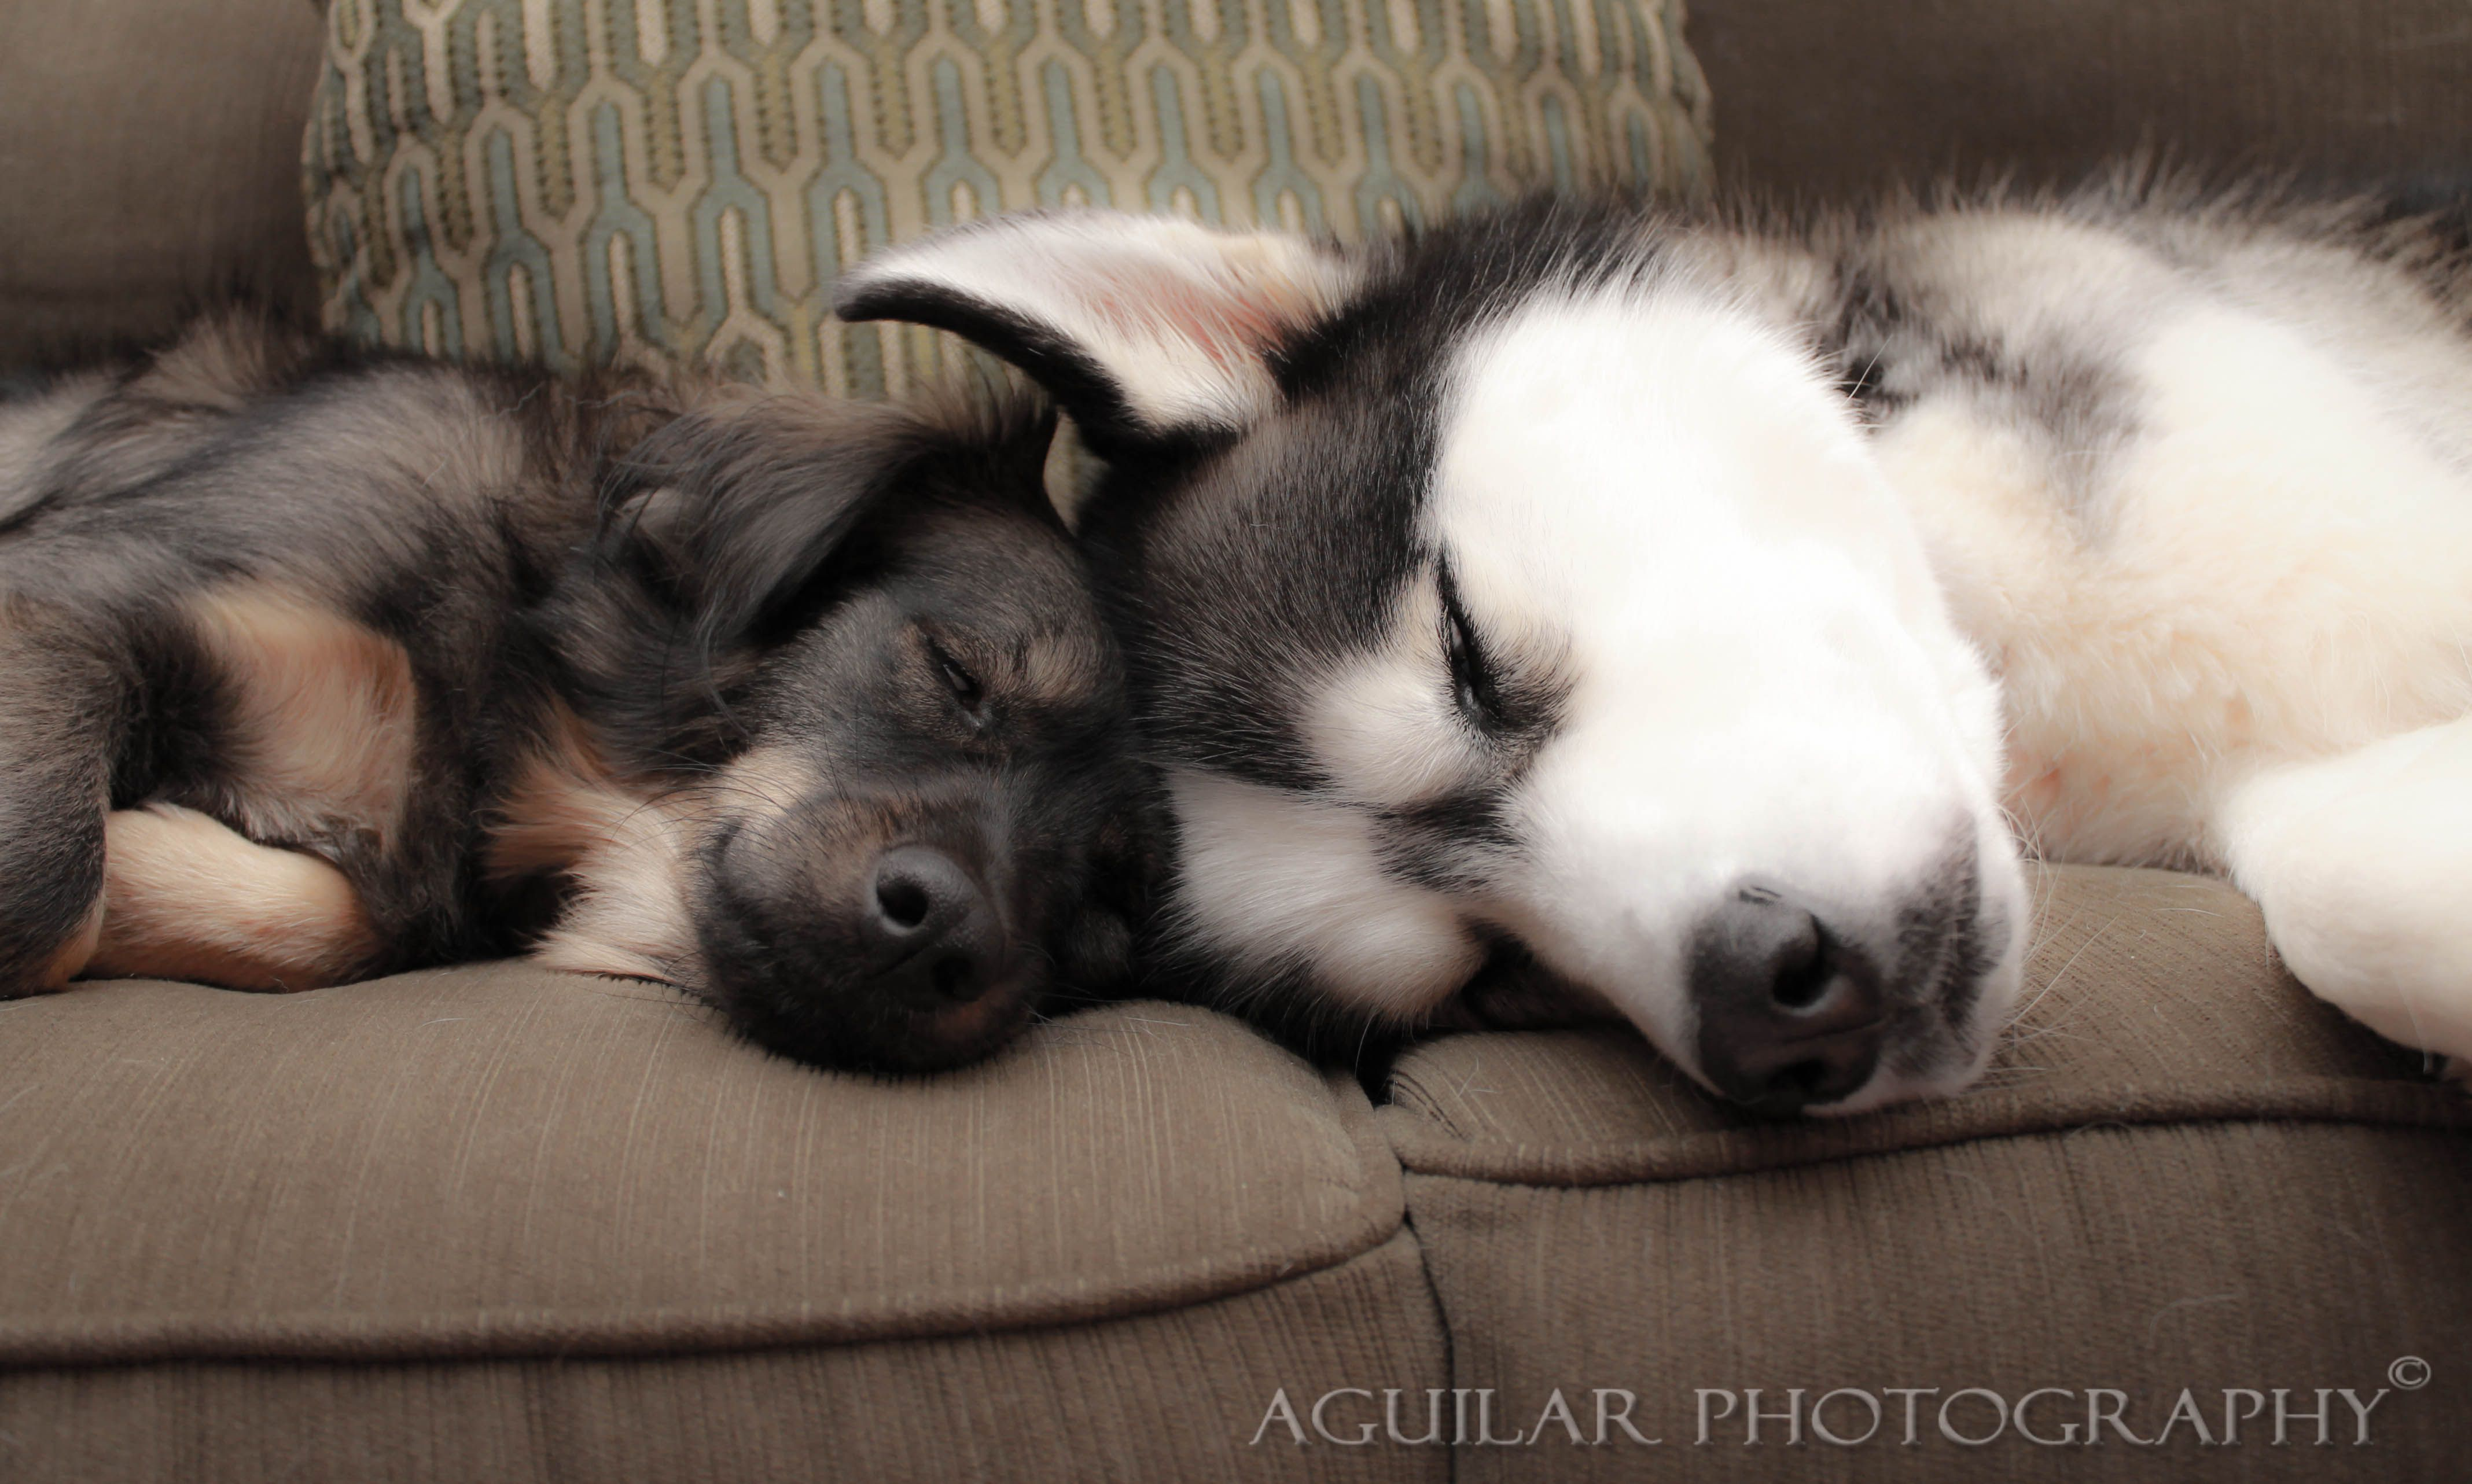 Sleepyheads - http://on.fb.me/aguilarphotography